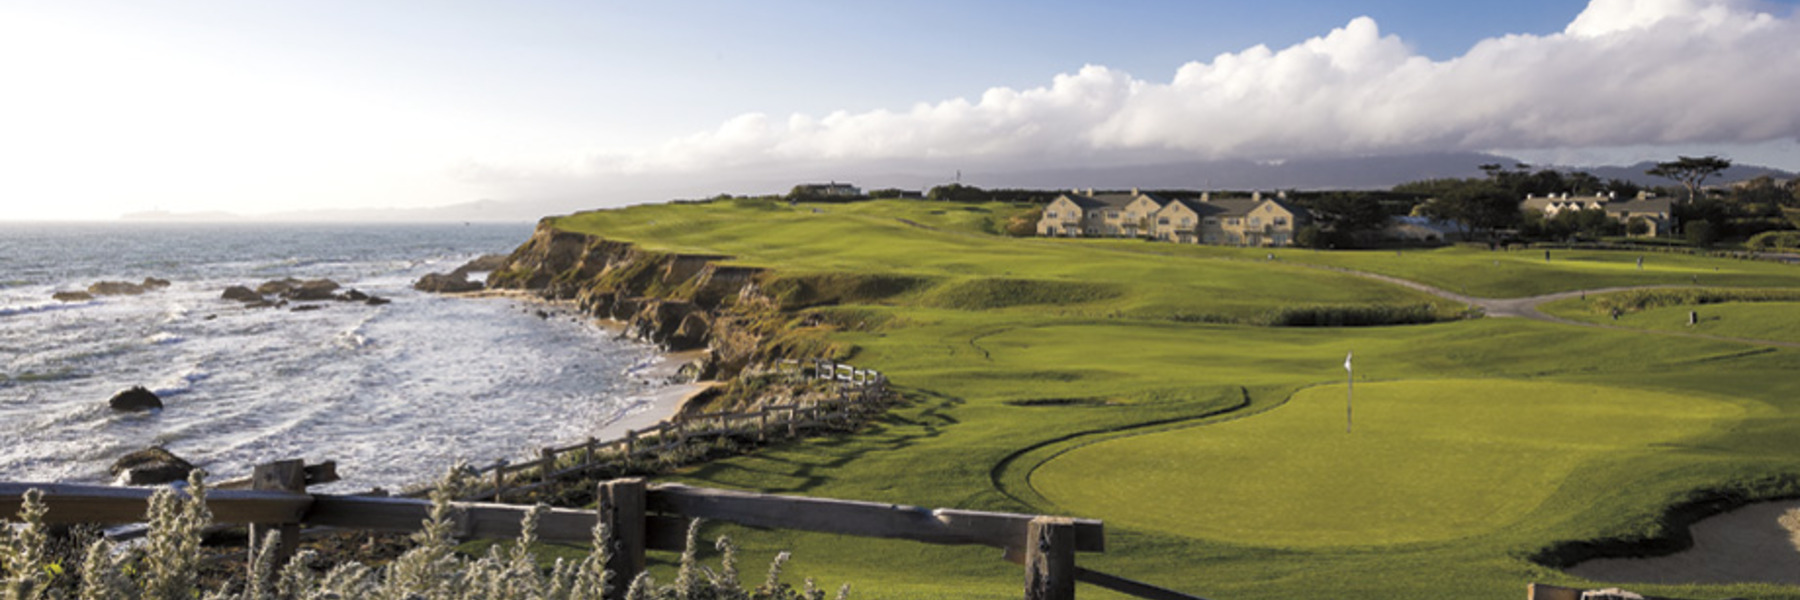 Golf Vacation Package - Ritz Carlton - The Old Course